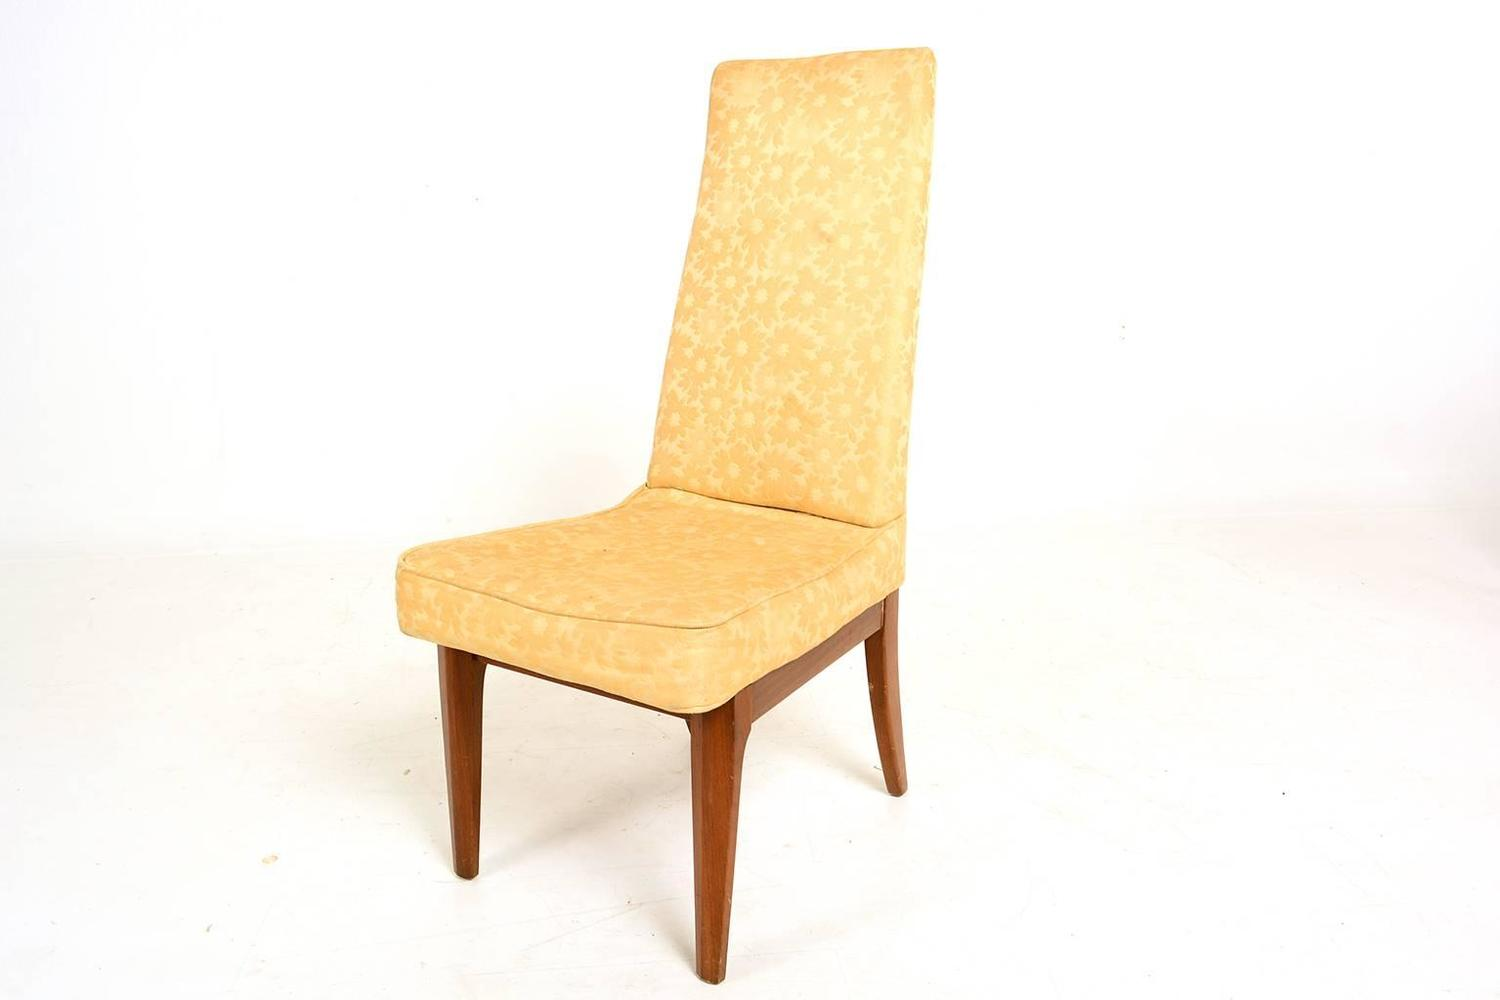 mode chair cover rentals for 1.00 cal dining chairs monteverdi and young sale at